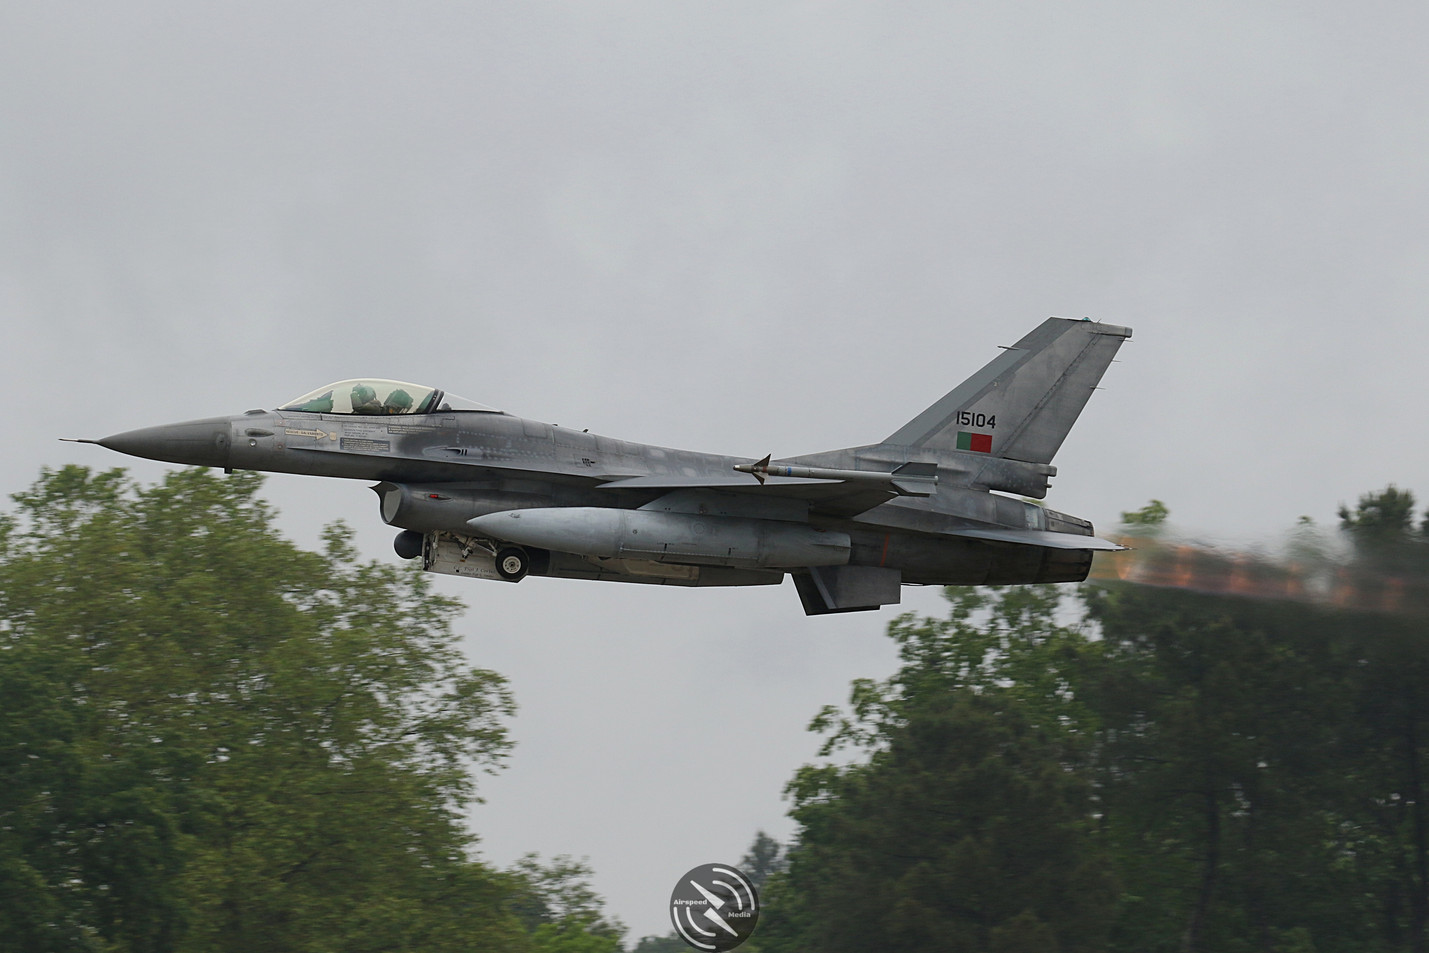 FAP F-16 NATO Tiger Meet 2019 (16).JPG